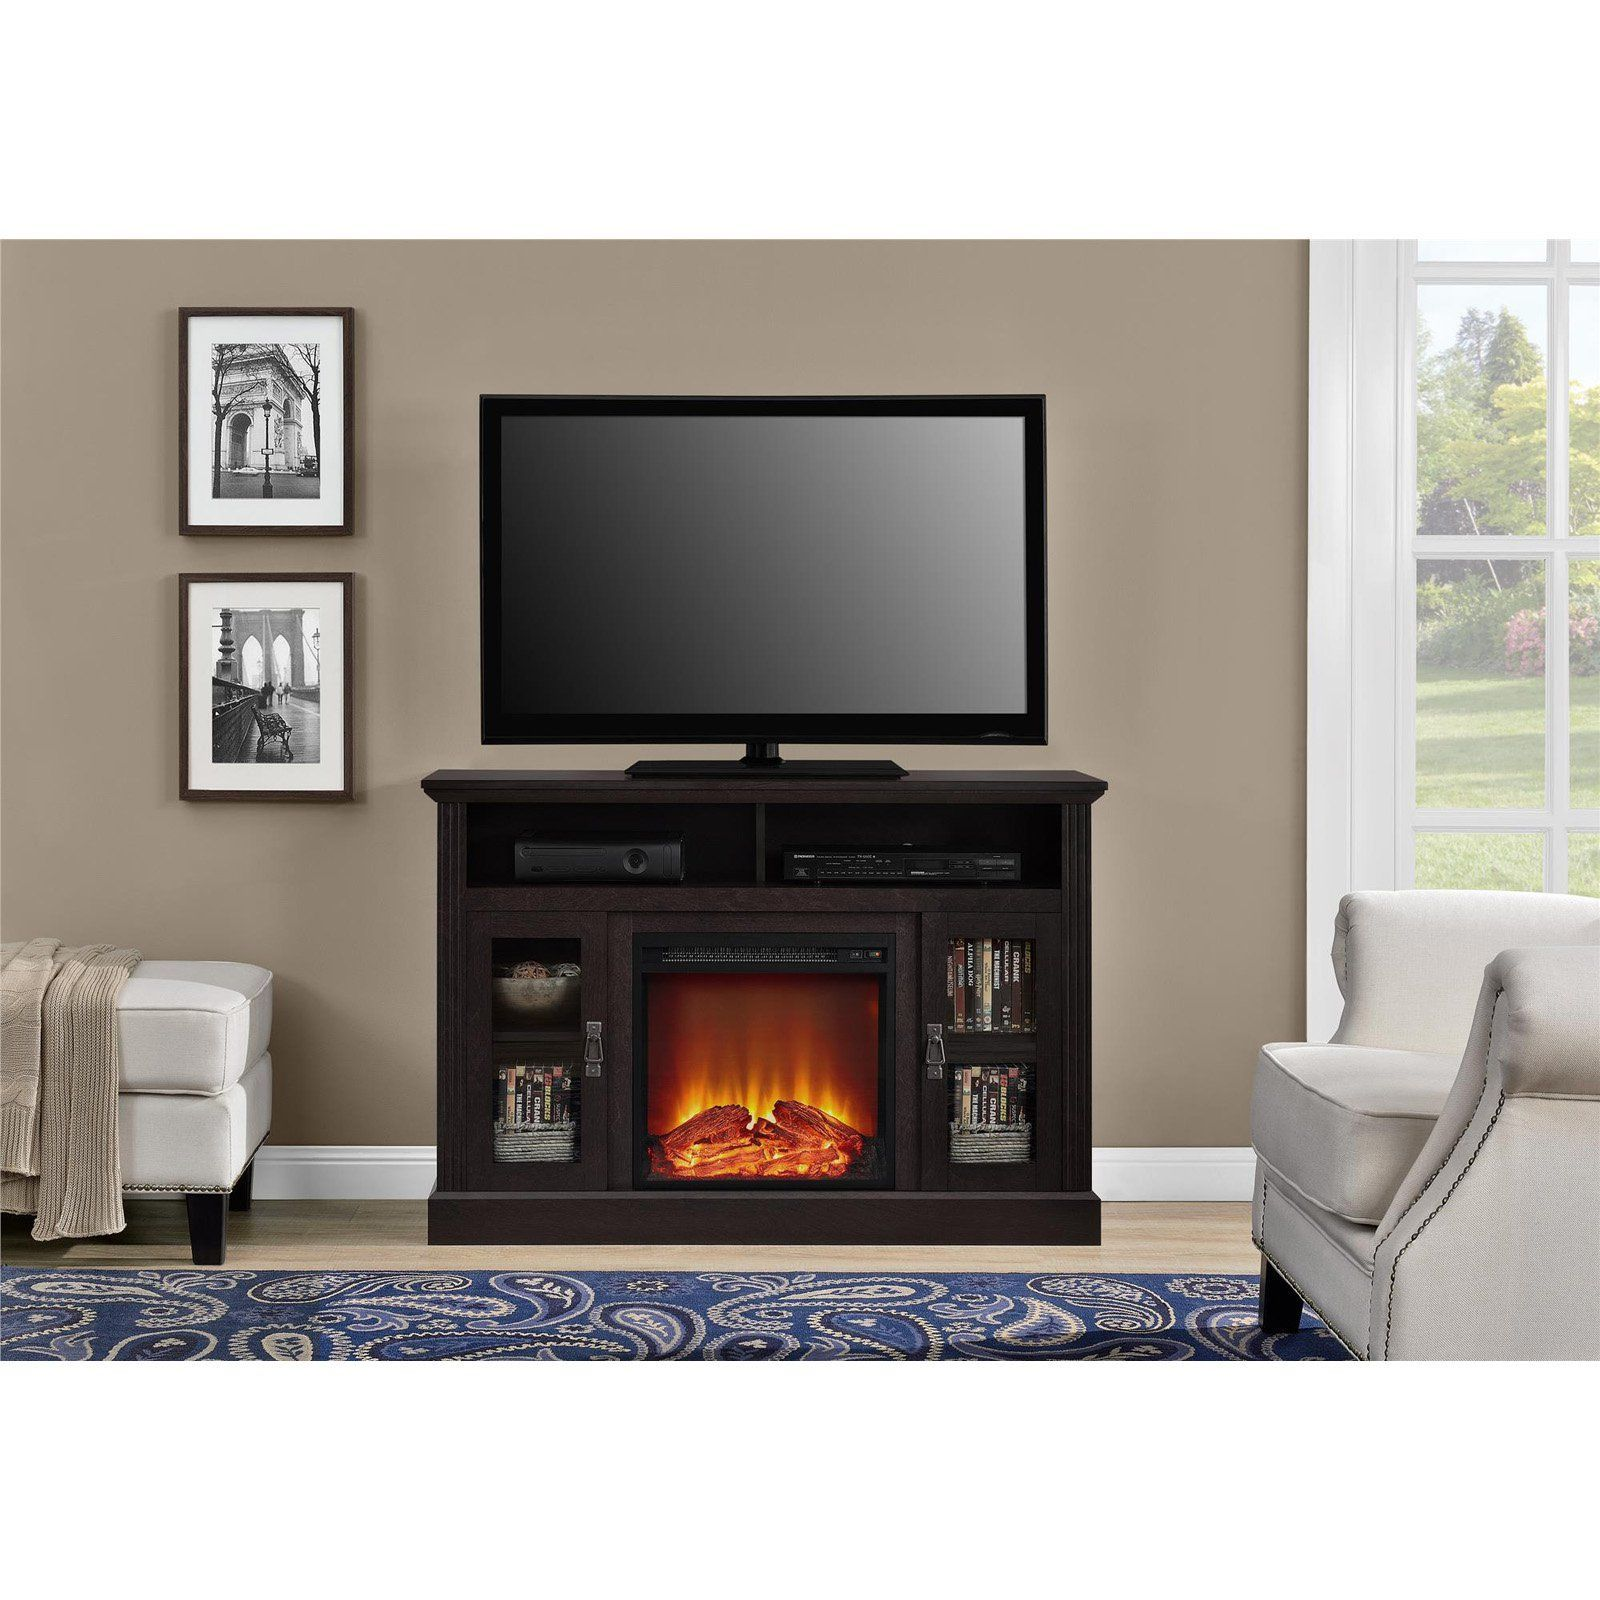 Ameriwood home chicago electric fireplace tv console pcom